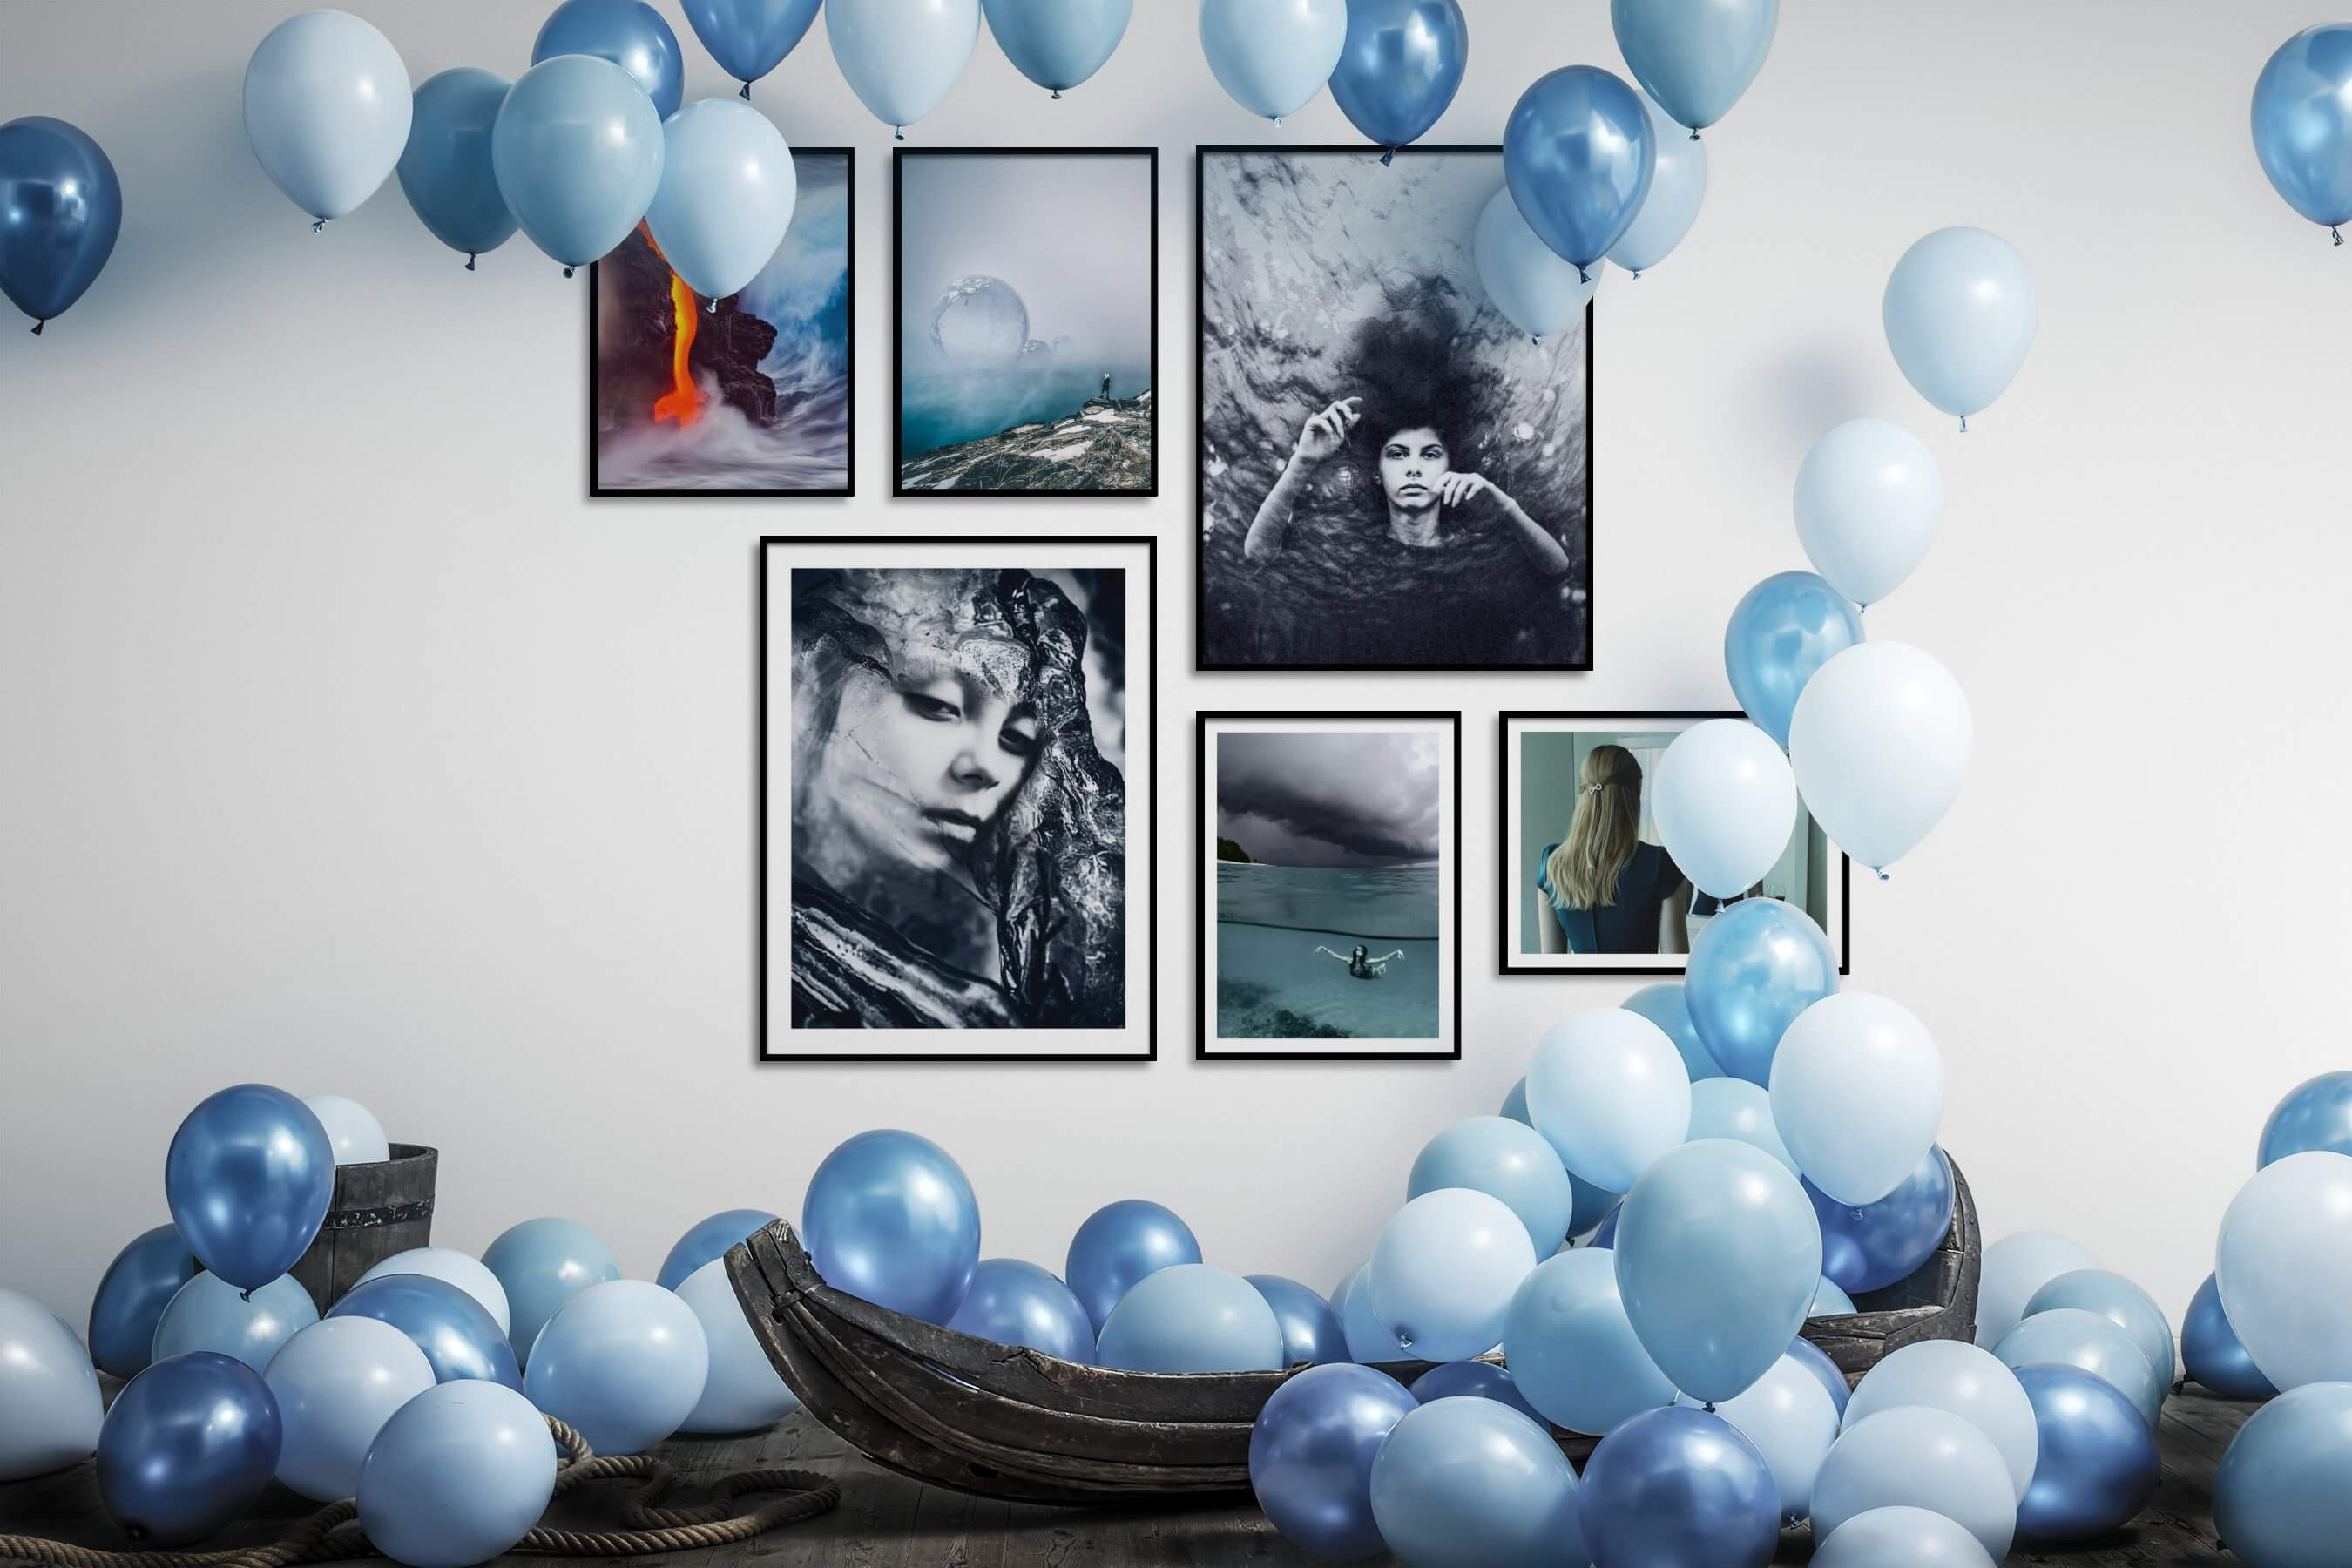 Gallery wall idea with six framed pictures arranged on a wall depicting Nature, Artsy, For the Moderate, Mindfulness, Black & White, Beach & Water, and Vintage